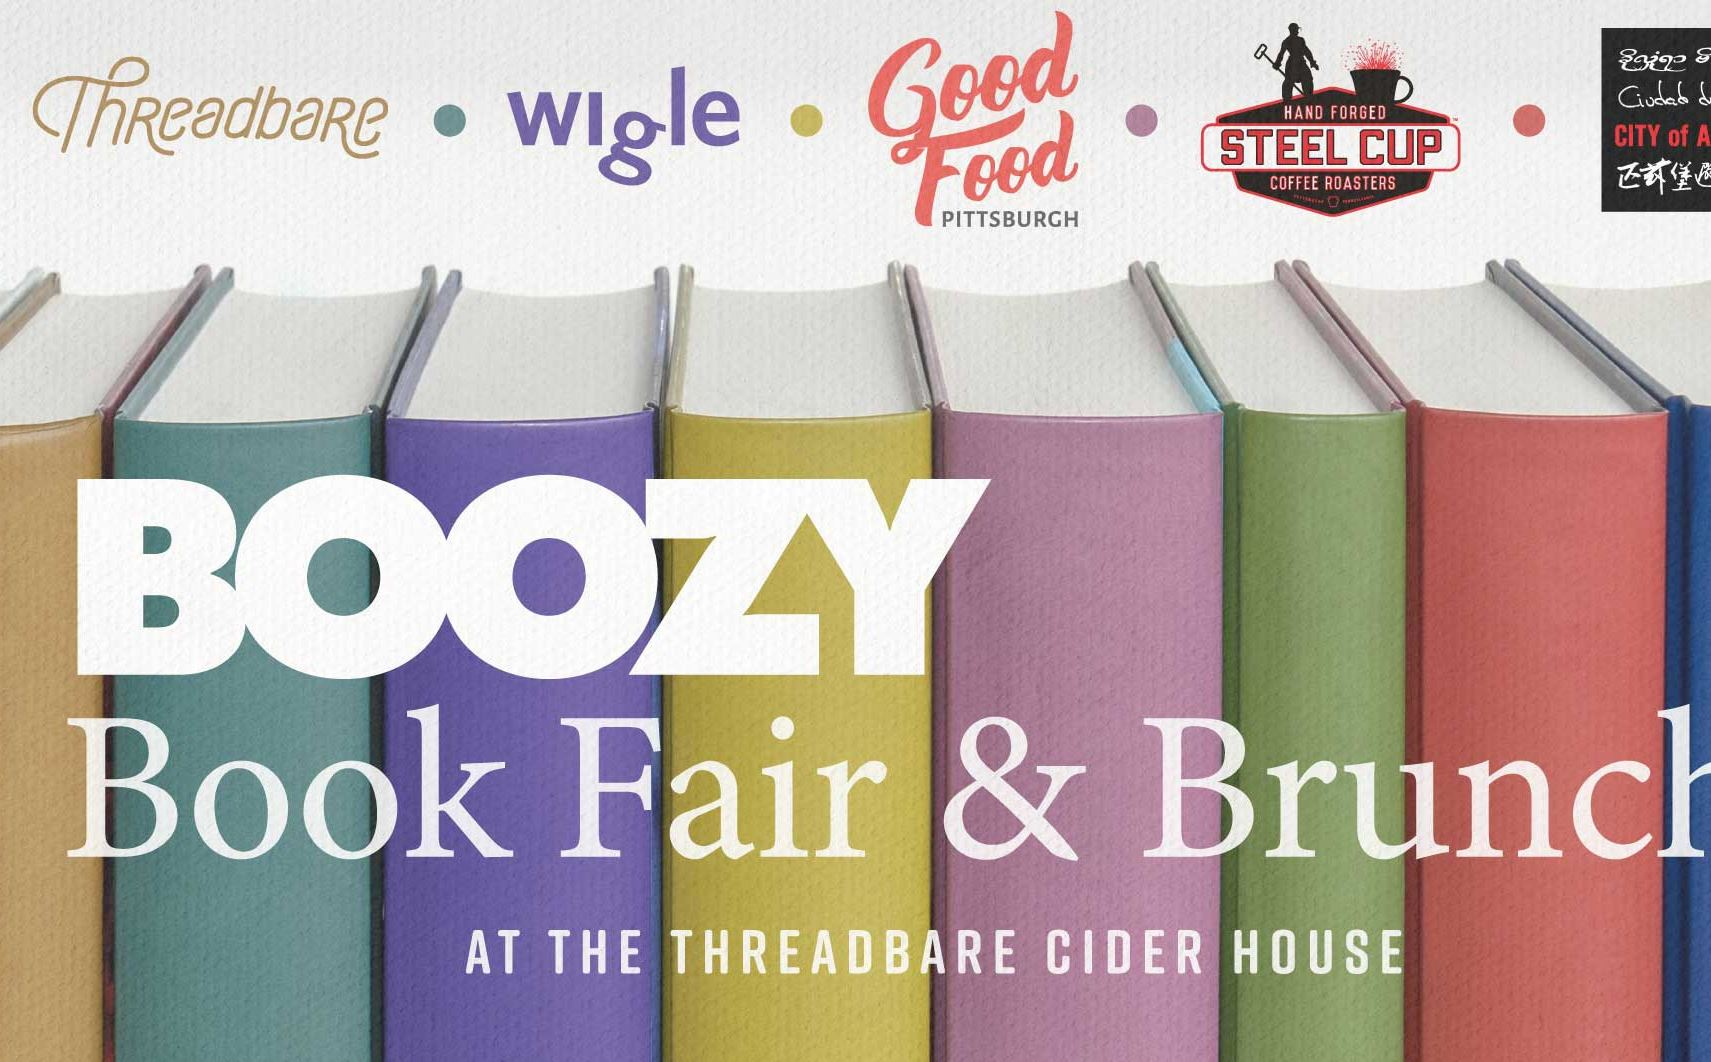 Boozy Boozy Brunch Book Fair will be held on Sunday at Wigle Whiskey's new cider-making offshoot in Spring Garden.